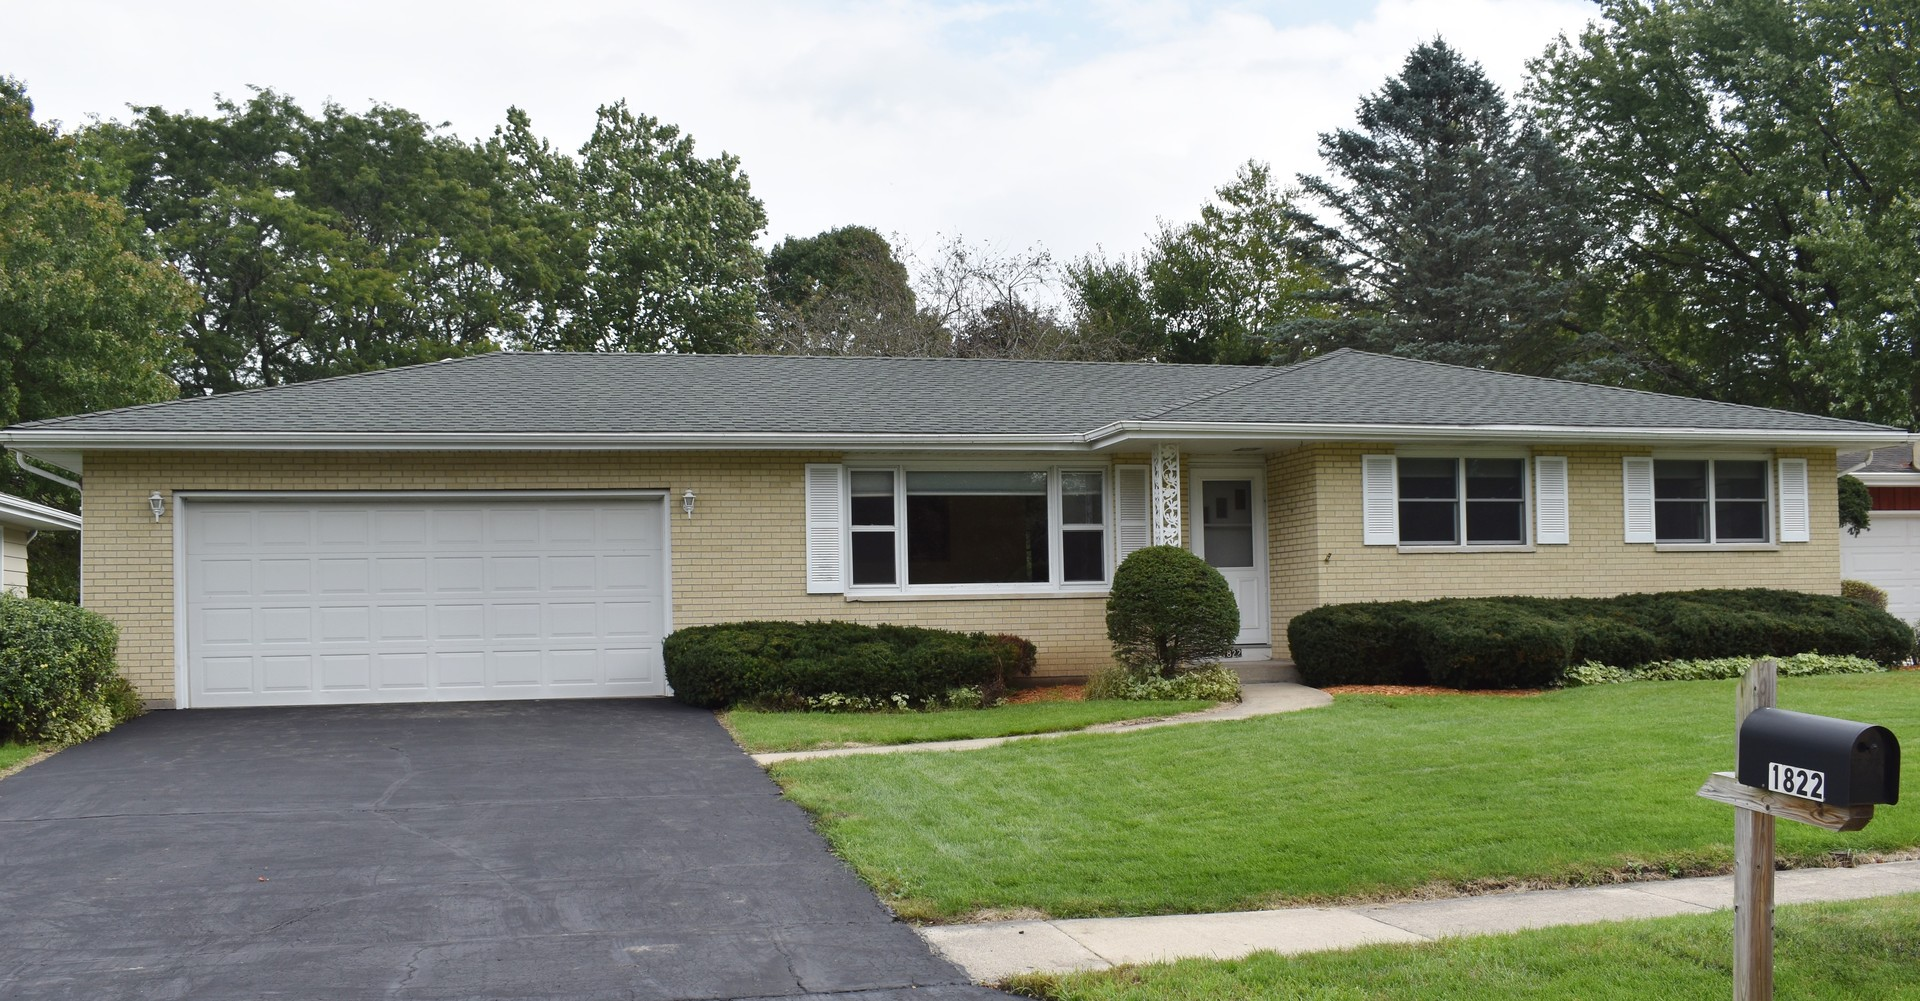 Photo for 1822 Perry Court, Sycamore, IL 60178 (MLS # 10535145)